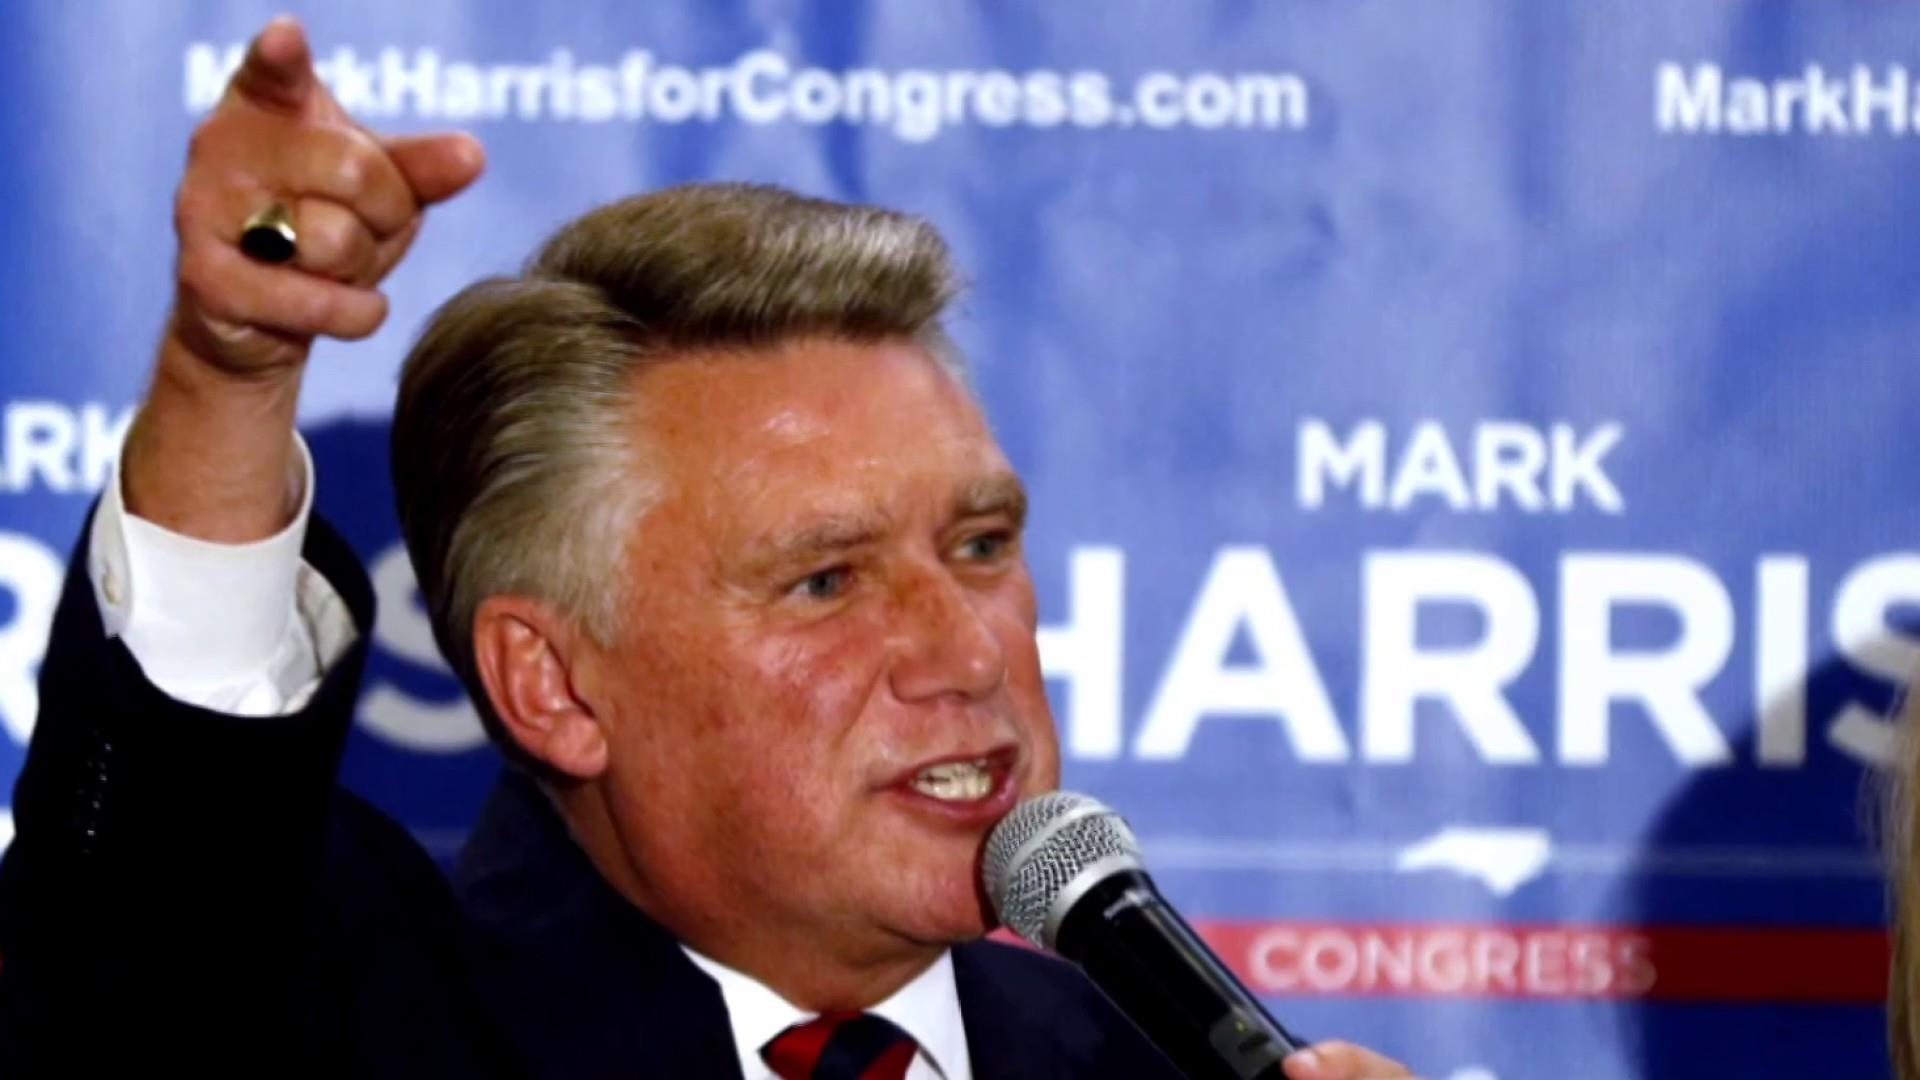 Unclear if Mark Harris runs in new election ordered by North Carolina board